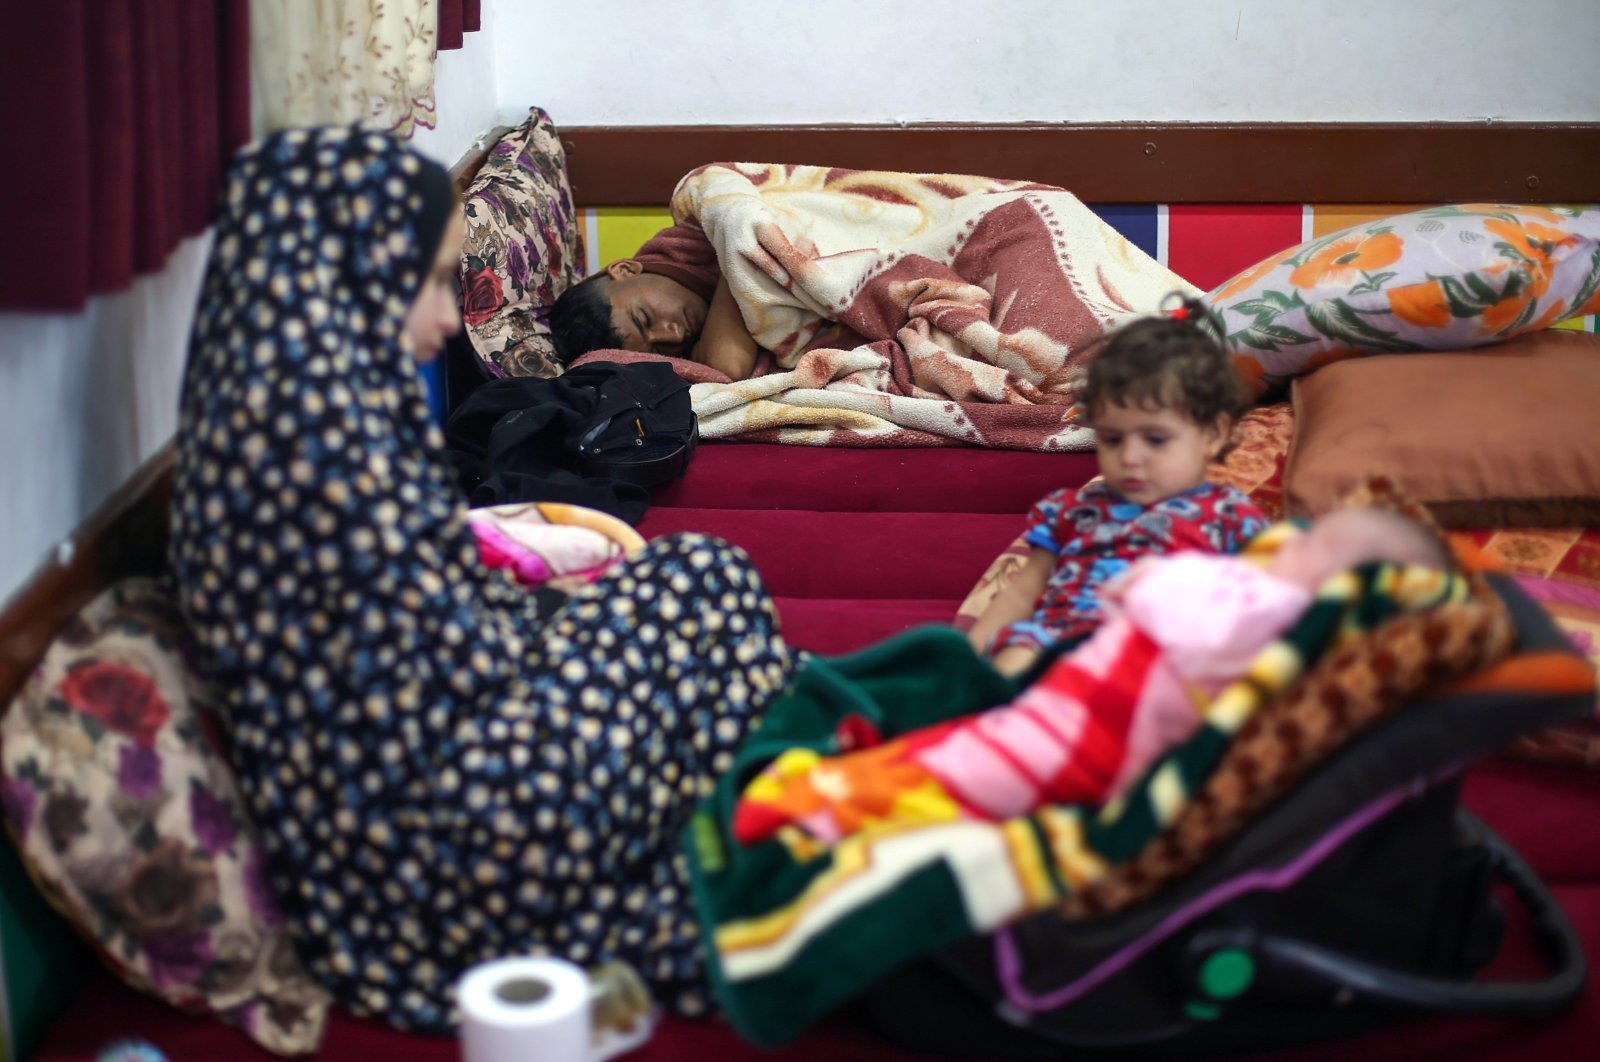 A Palestinian man, who fled his home due to Israeli air and artillery strikes, sleeps in a United Nations-run school where he takes refuge with his family, in Gaza City, May 15, 2021. (Reuters Photo)